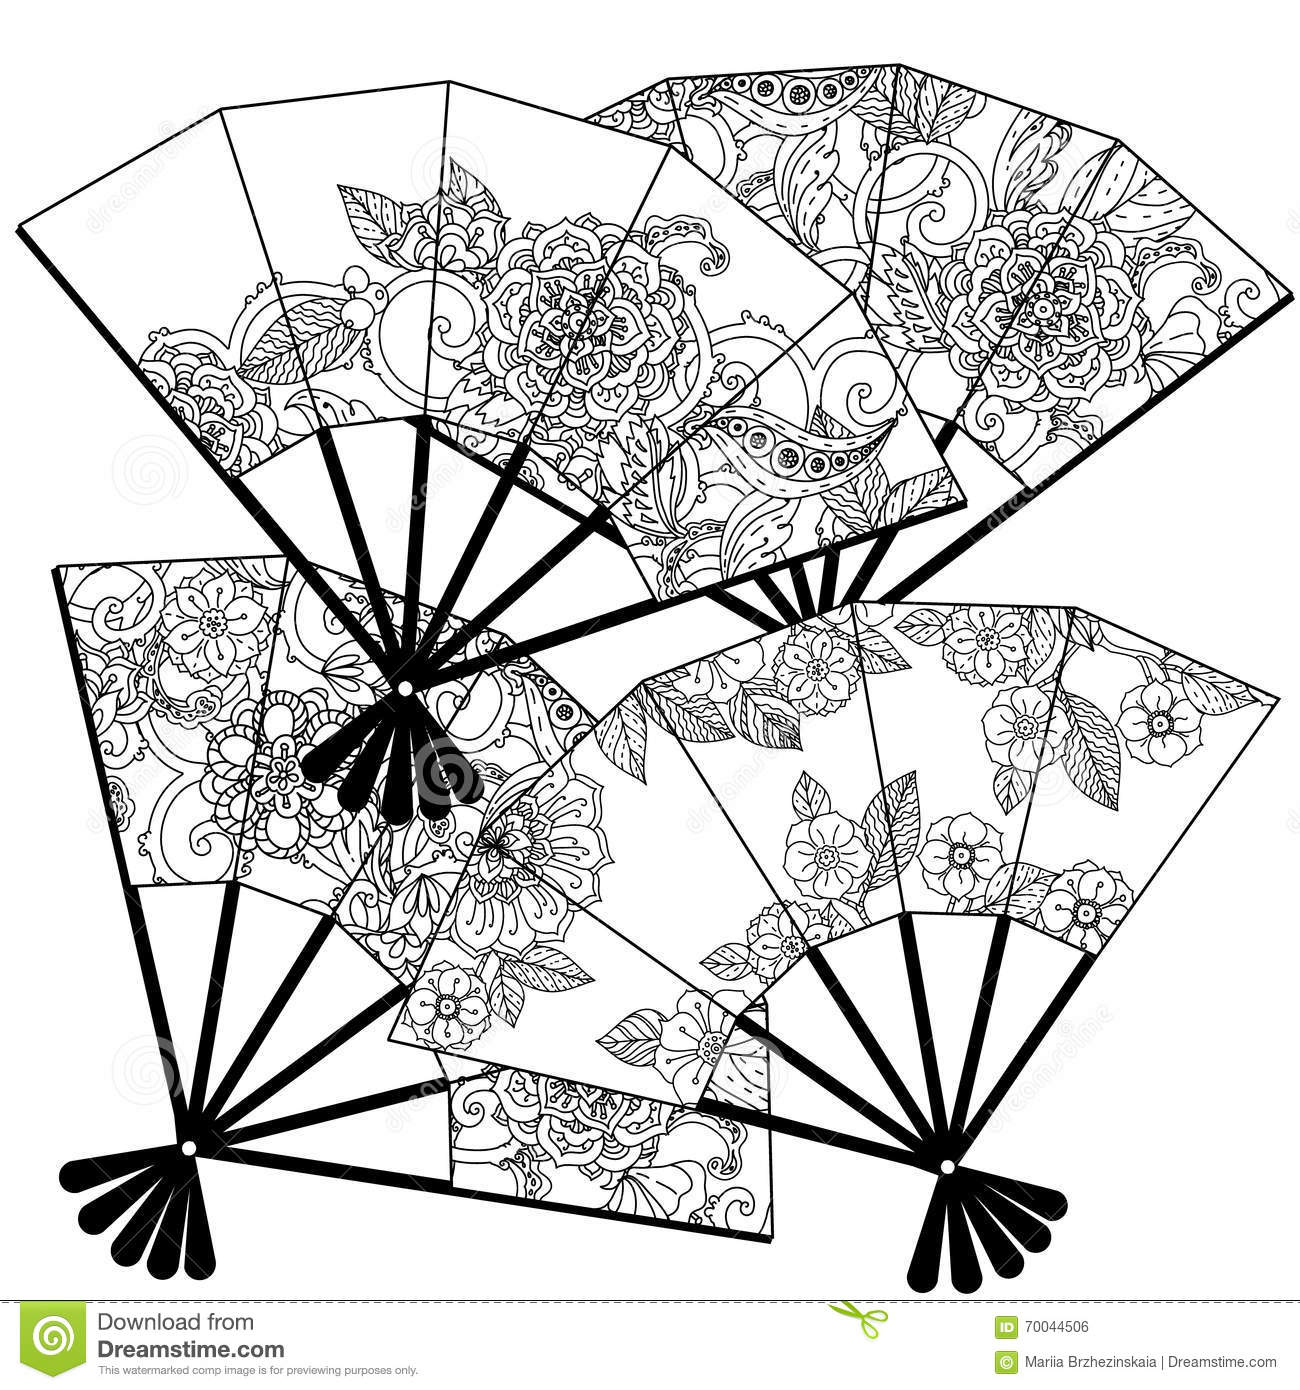 Chinese Fans Coloring Pages 6 Coloring Pages